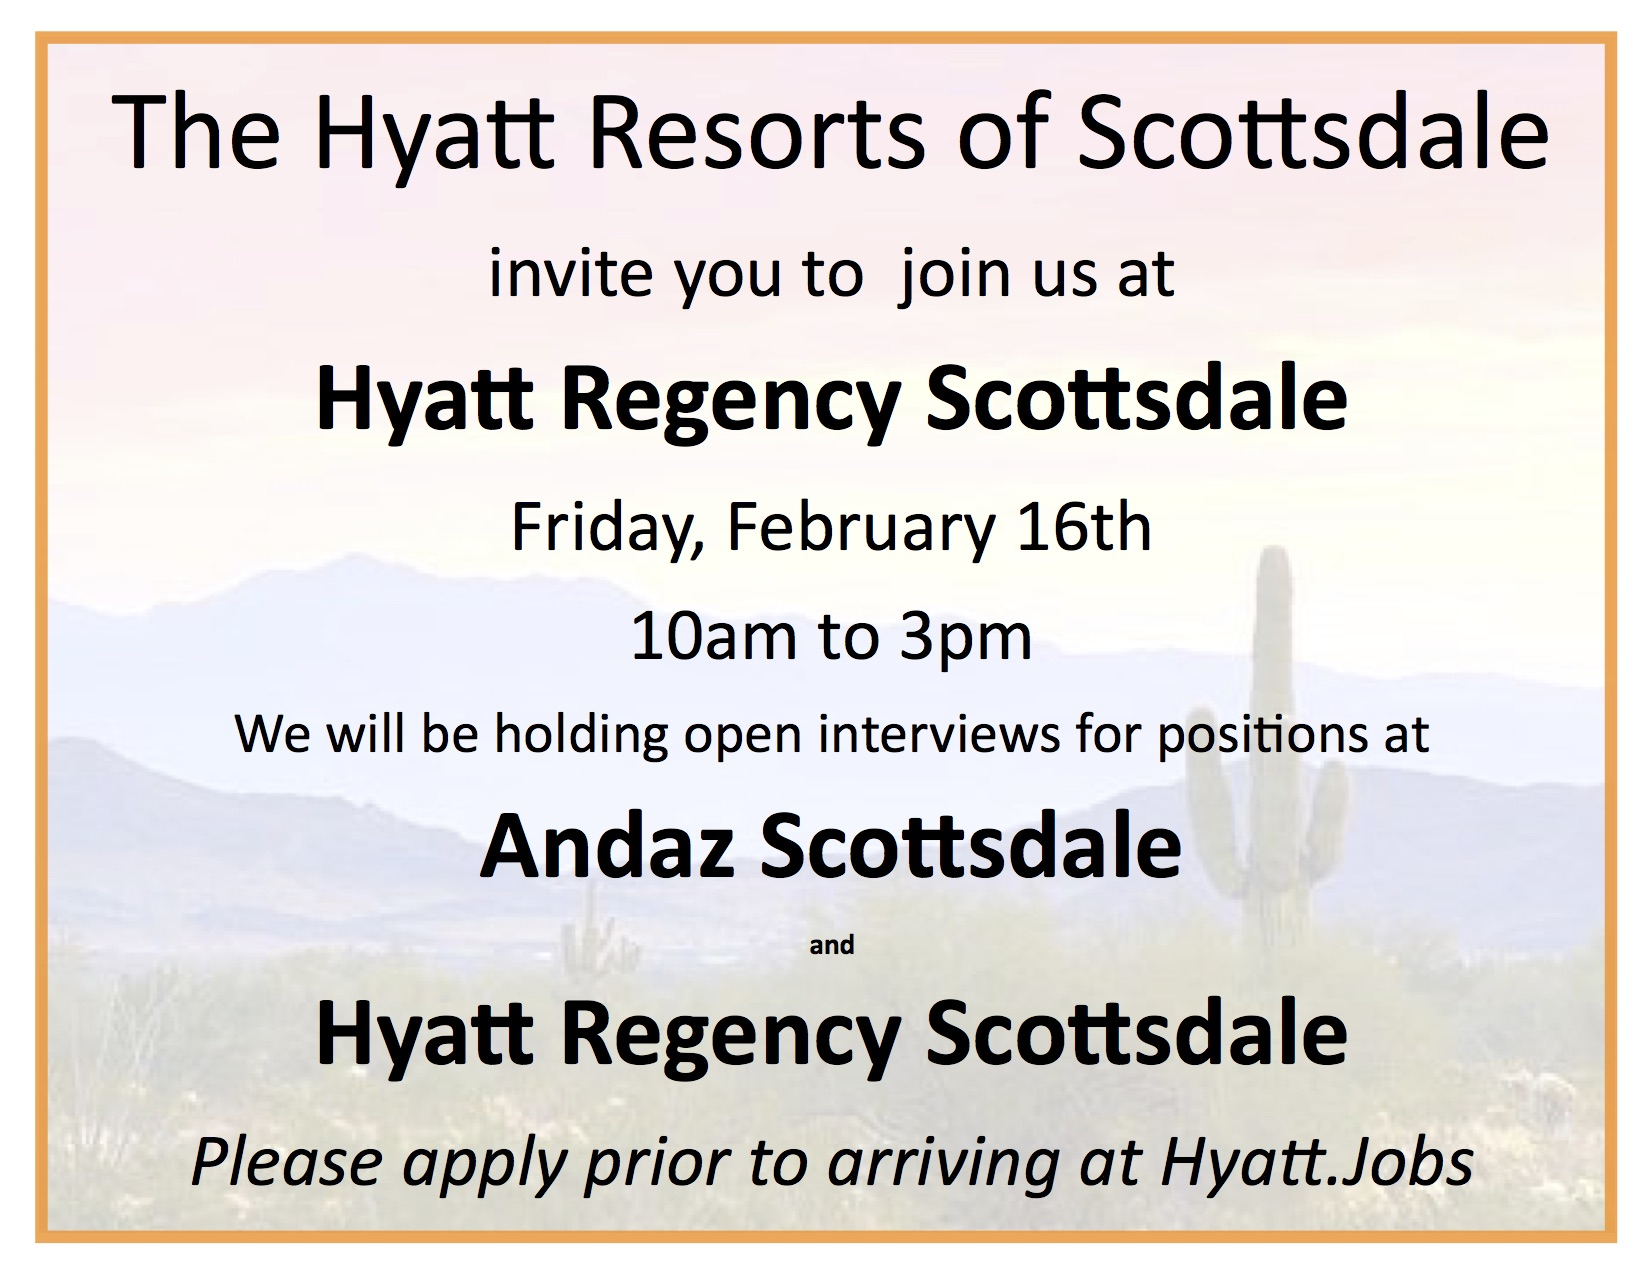 Hyatt and Andaz Job Openings.Scottsdale 2